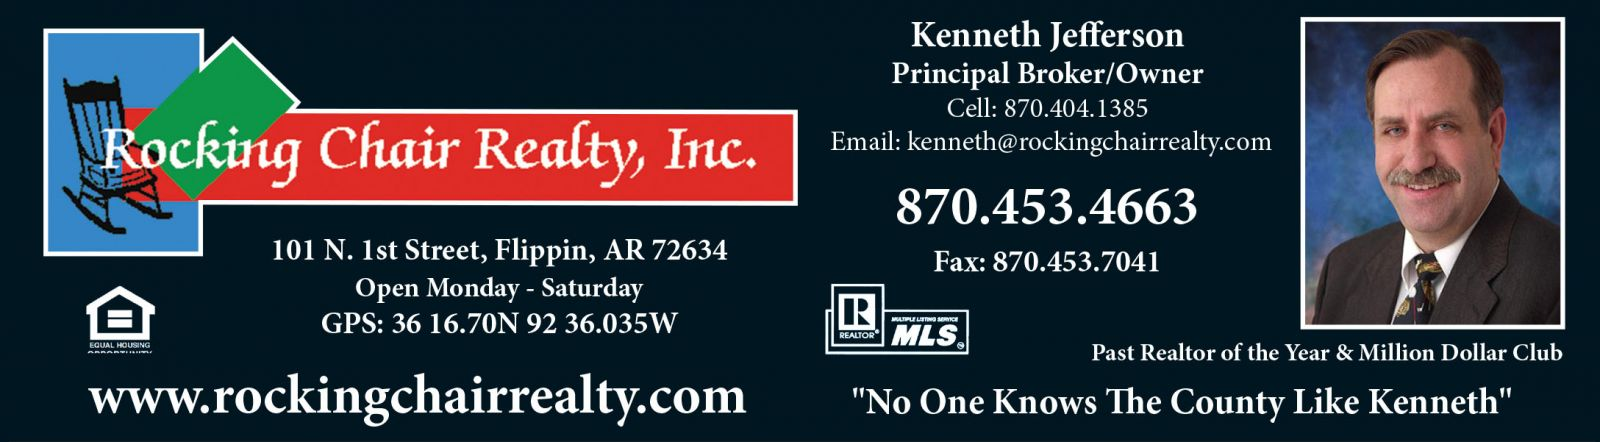 Rocking Chair Realty, Inc � Kenneth Jefferson, Principal Broker/Owner � Flippin, AR Real Estate